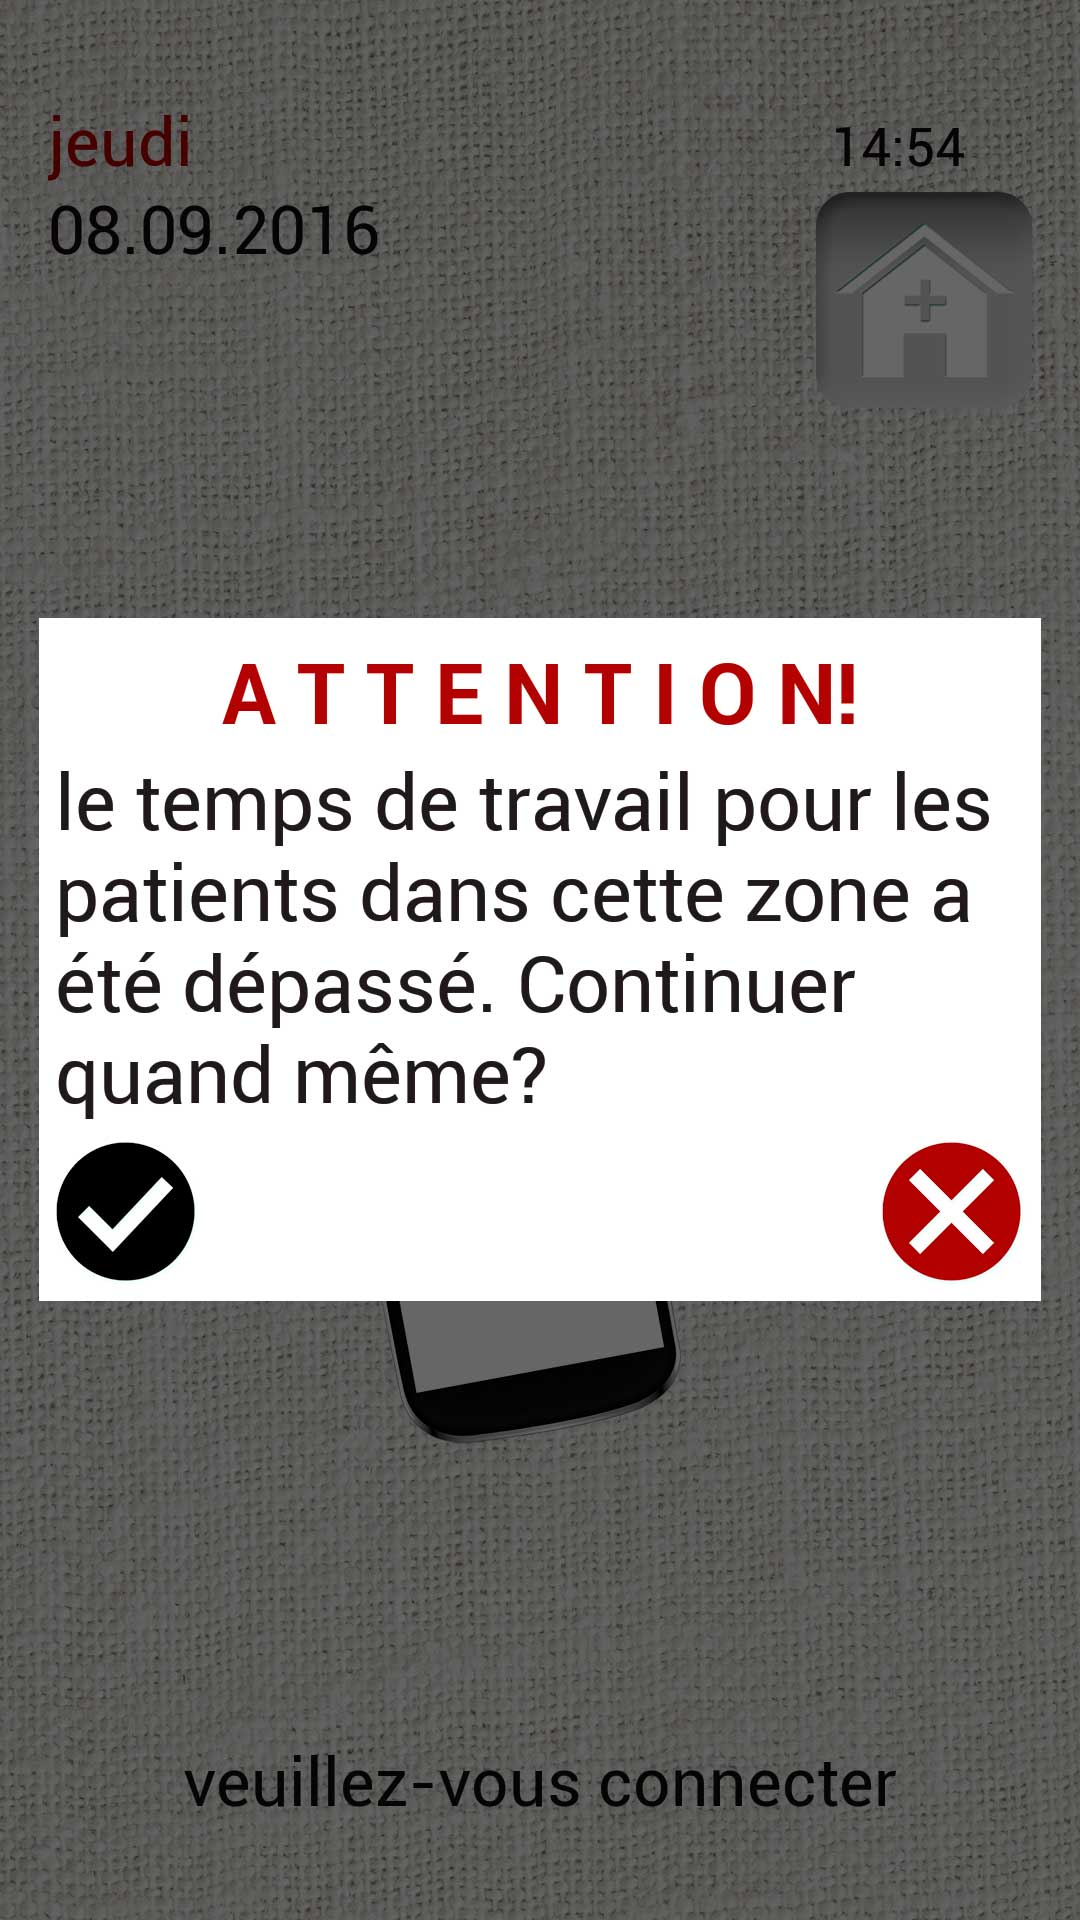 ginstr_app_caregiverManagerPlus_FR_07